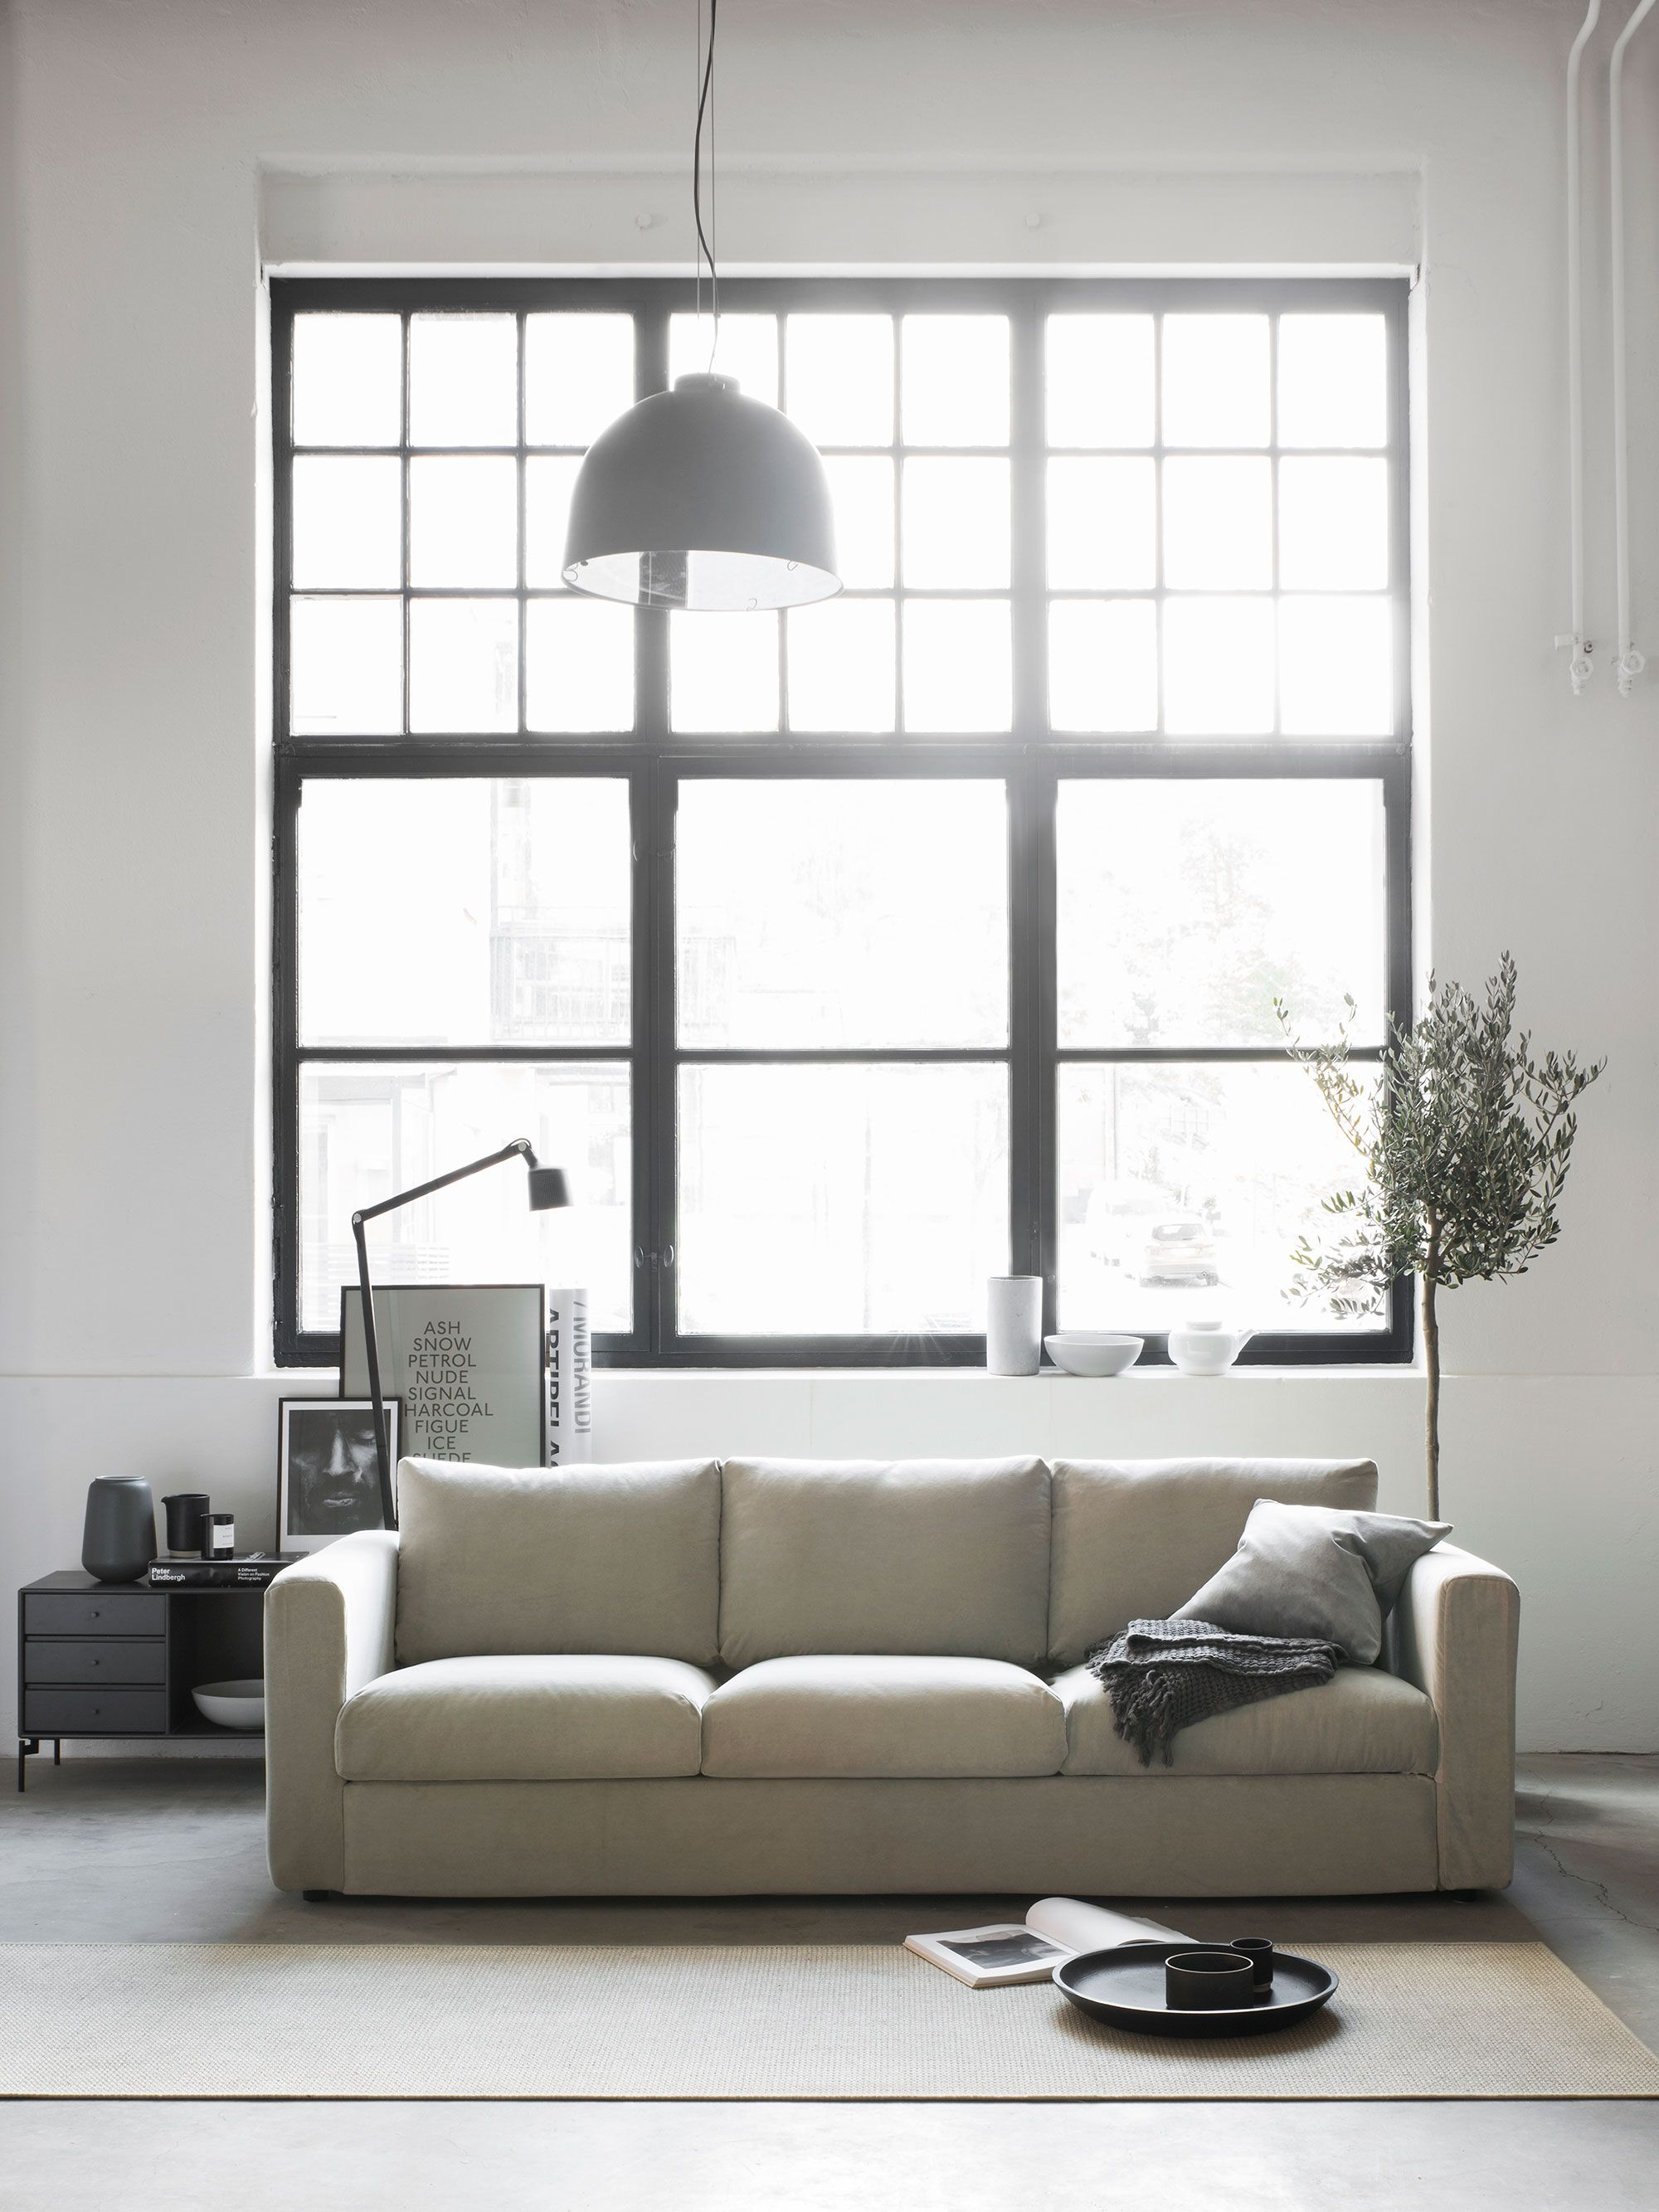 Vimle, 3 Seater sofa cover | Pinterest | Modern industrial ...